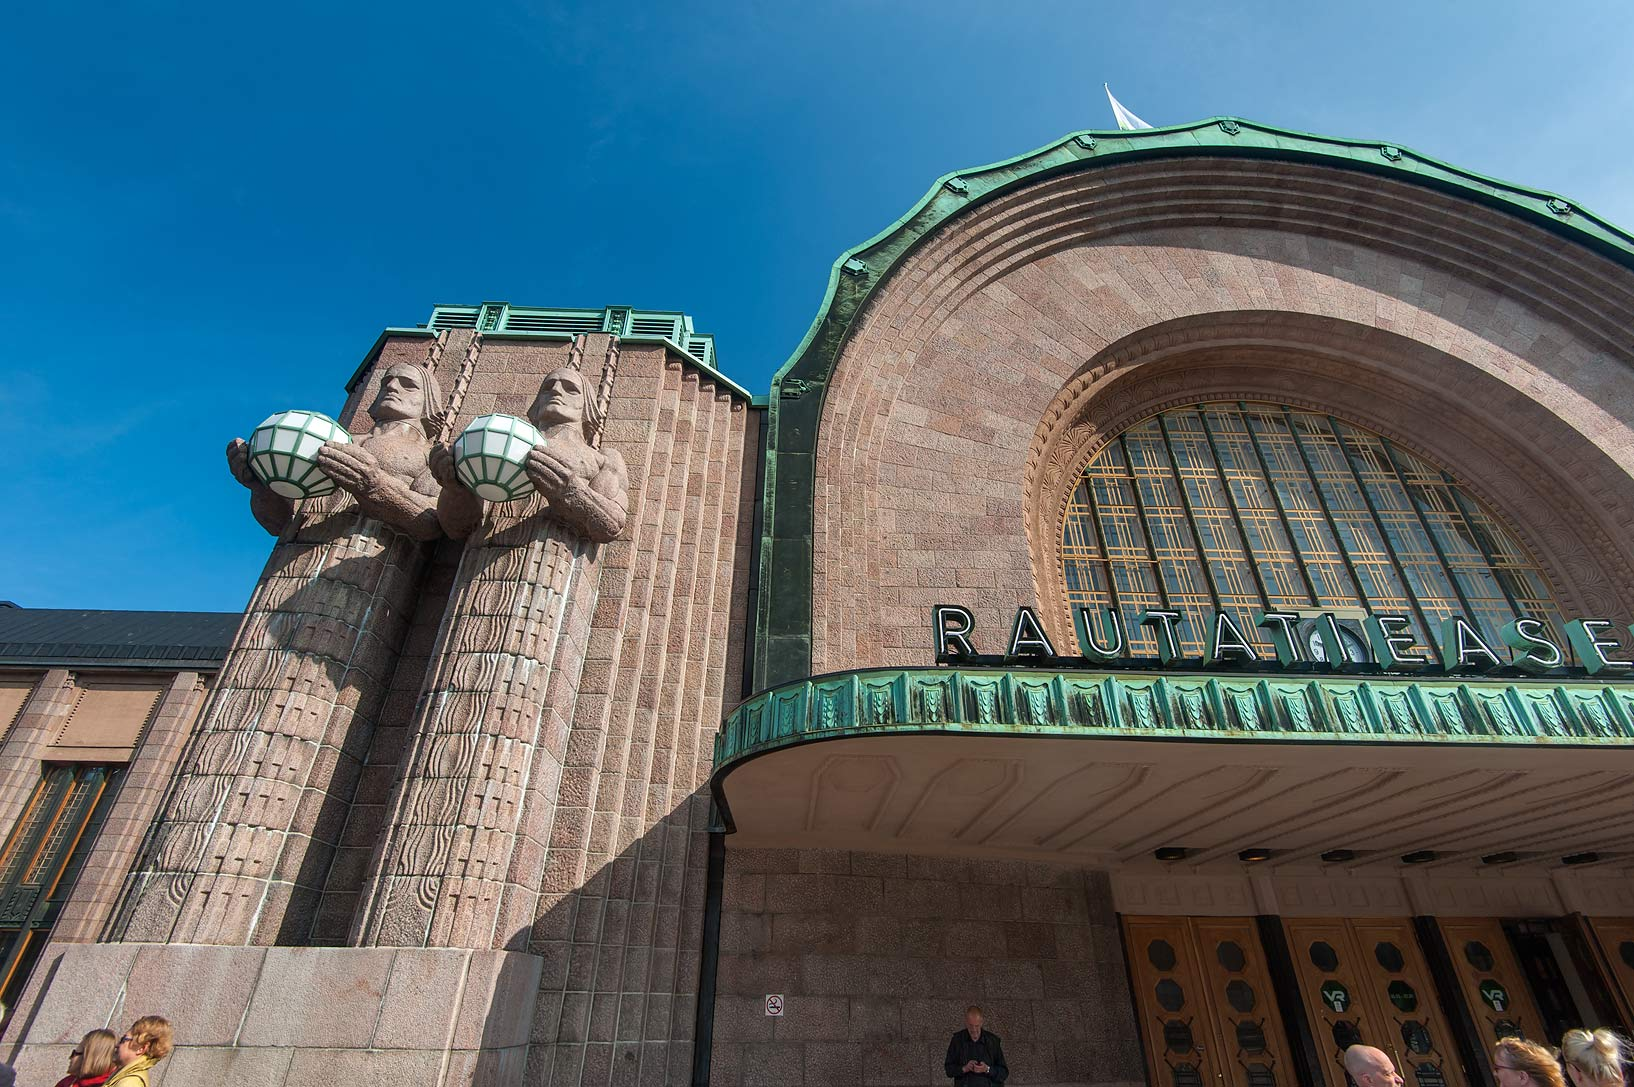 Left side of the main entrance of Central Railway Station. Helsinki, Finland